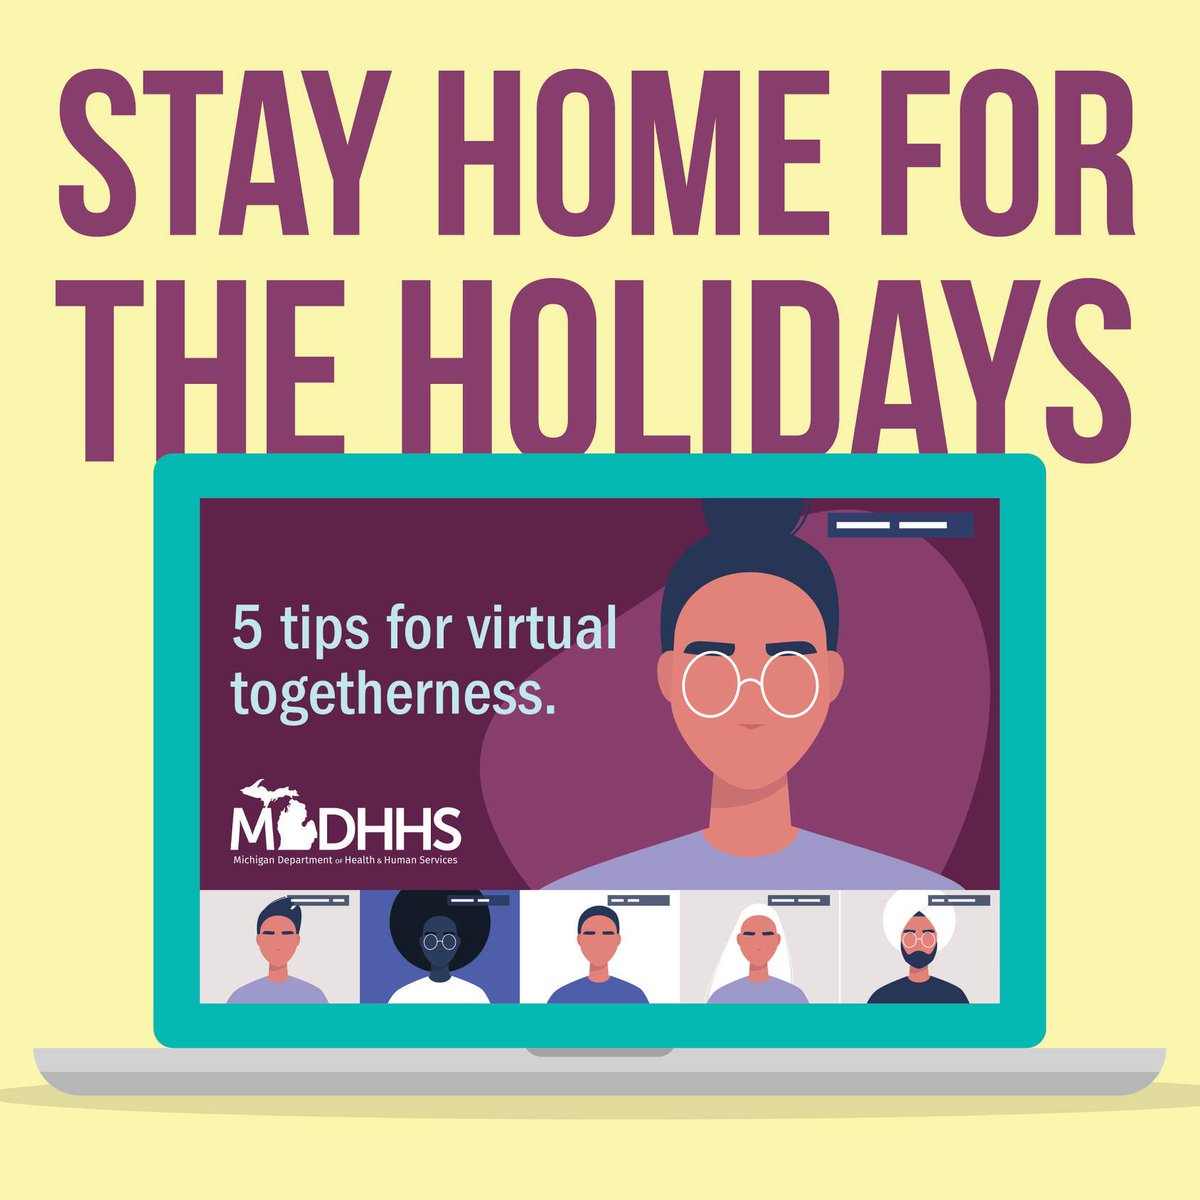 'Tis the season. And this year, people all across the world are making sacrifices for their safety. While we're celebrating differently this year, often apart from family and friends, discover ways to stay connected.